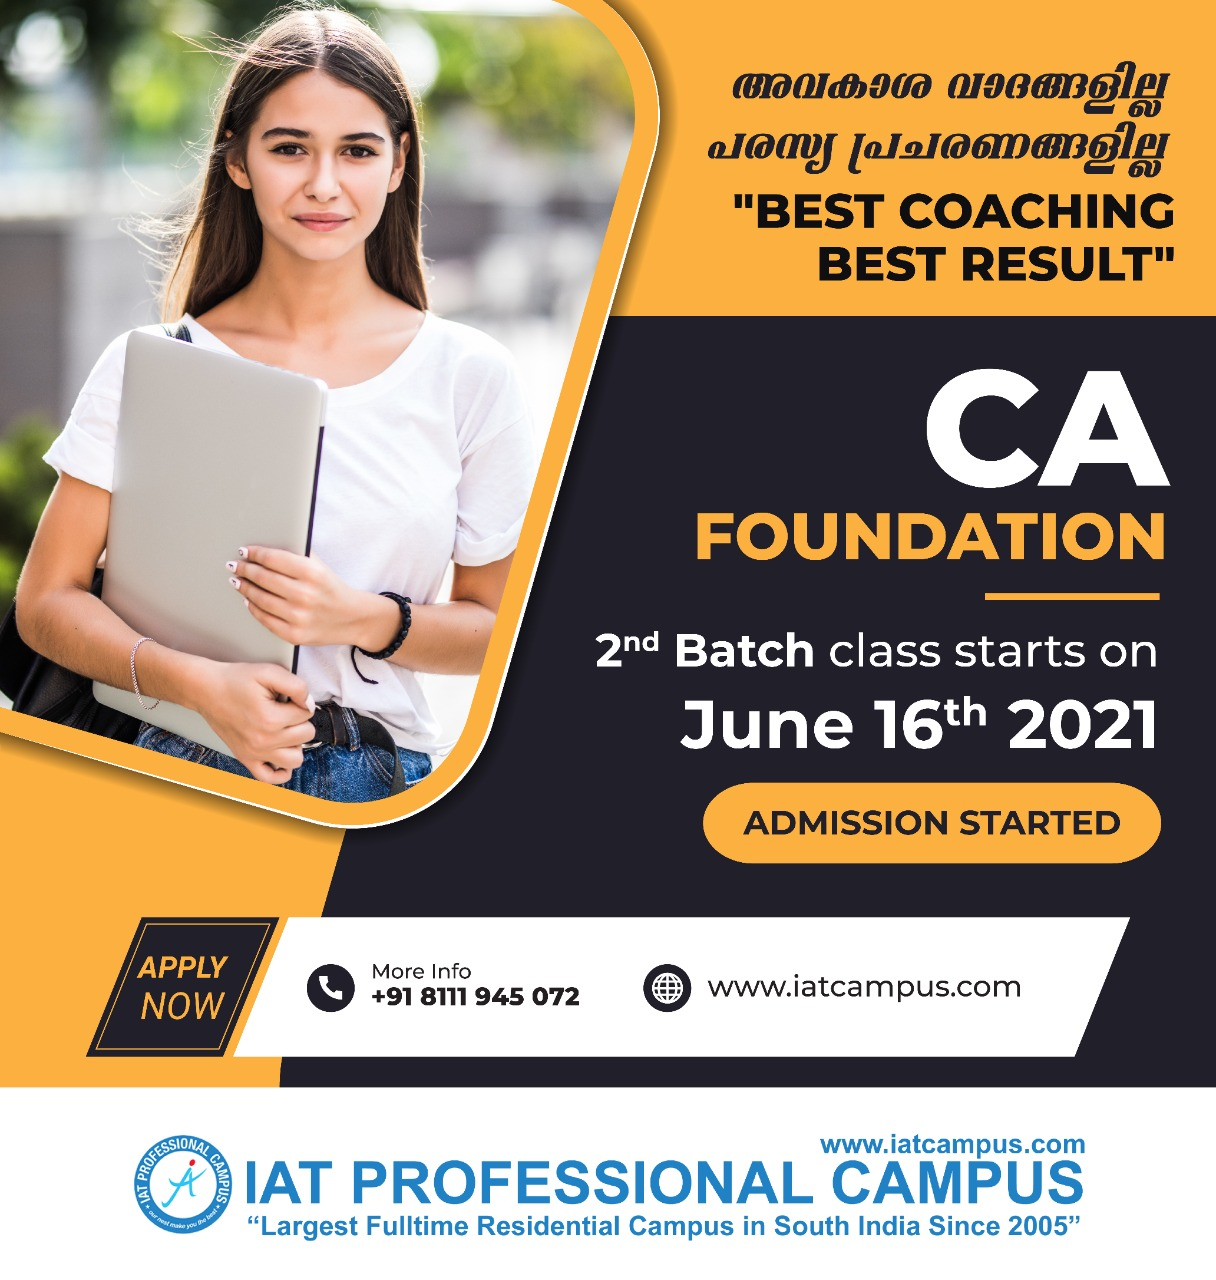 CA Foundation Class Admission Started